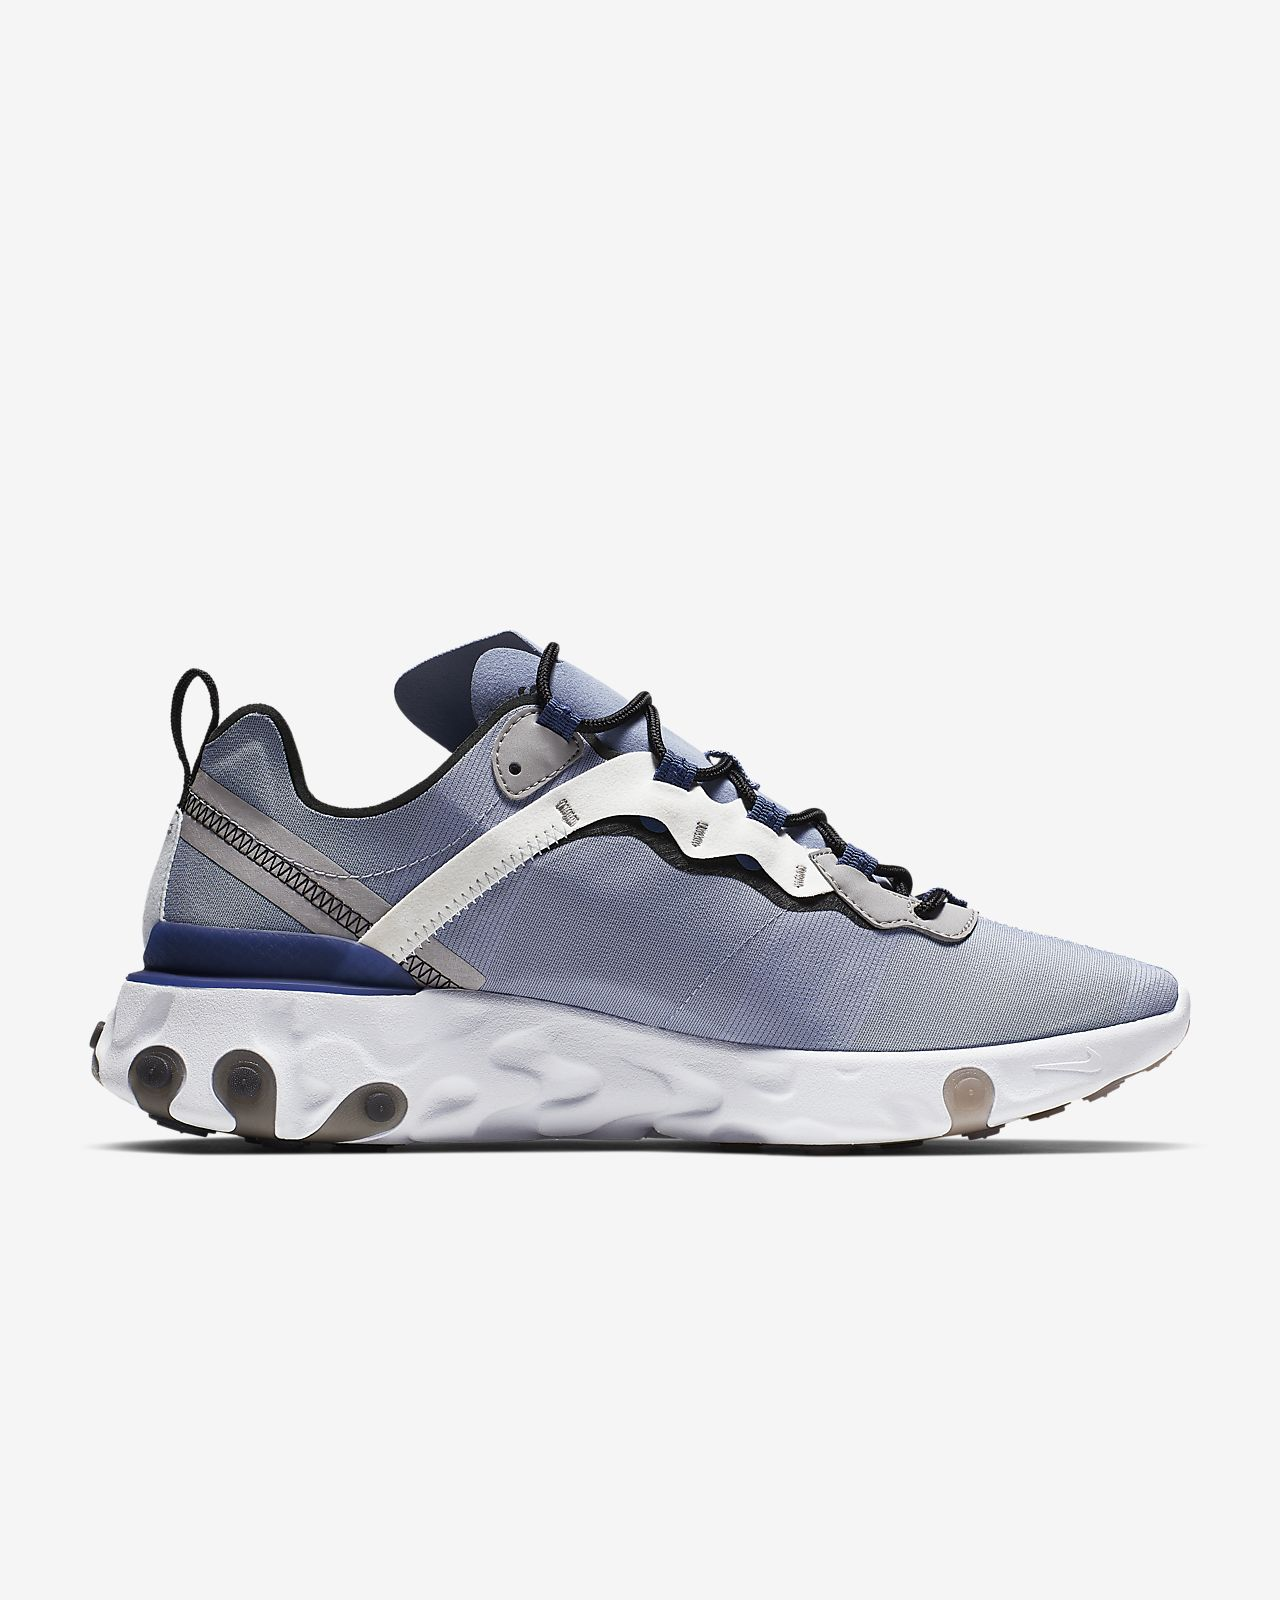 3c322ae43cd91 Chaussure Nike React Element 55 pour Homme. Nike.com FR